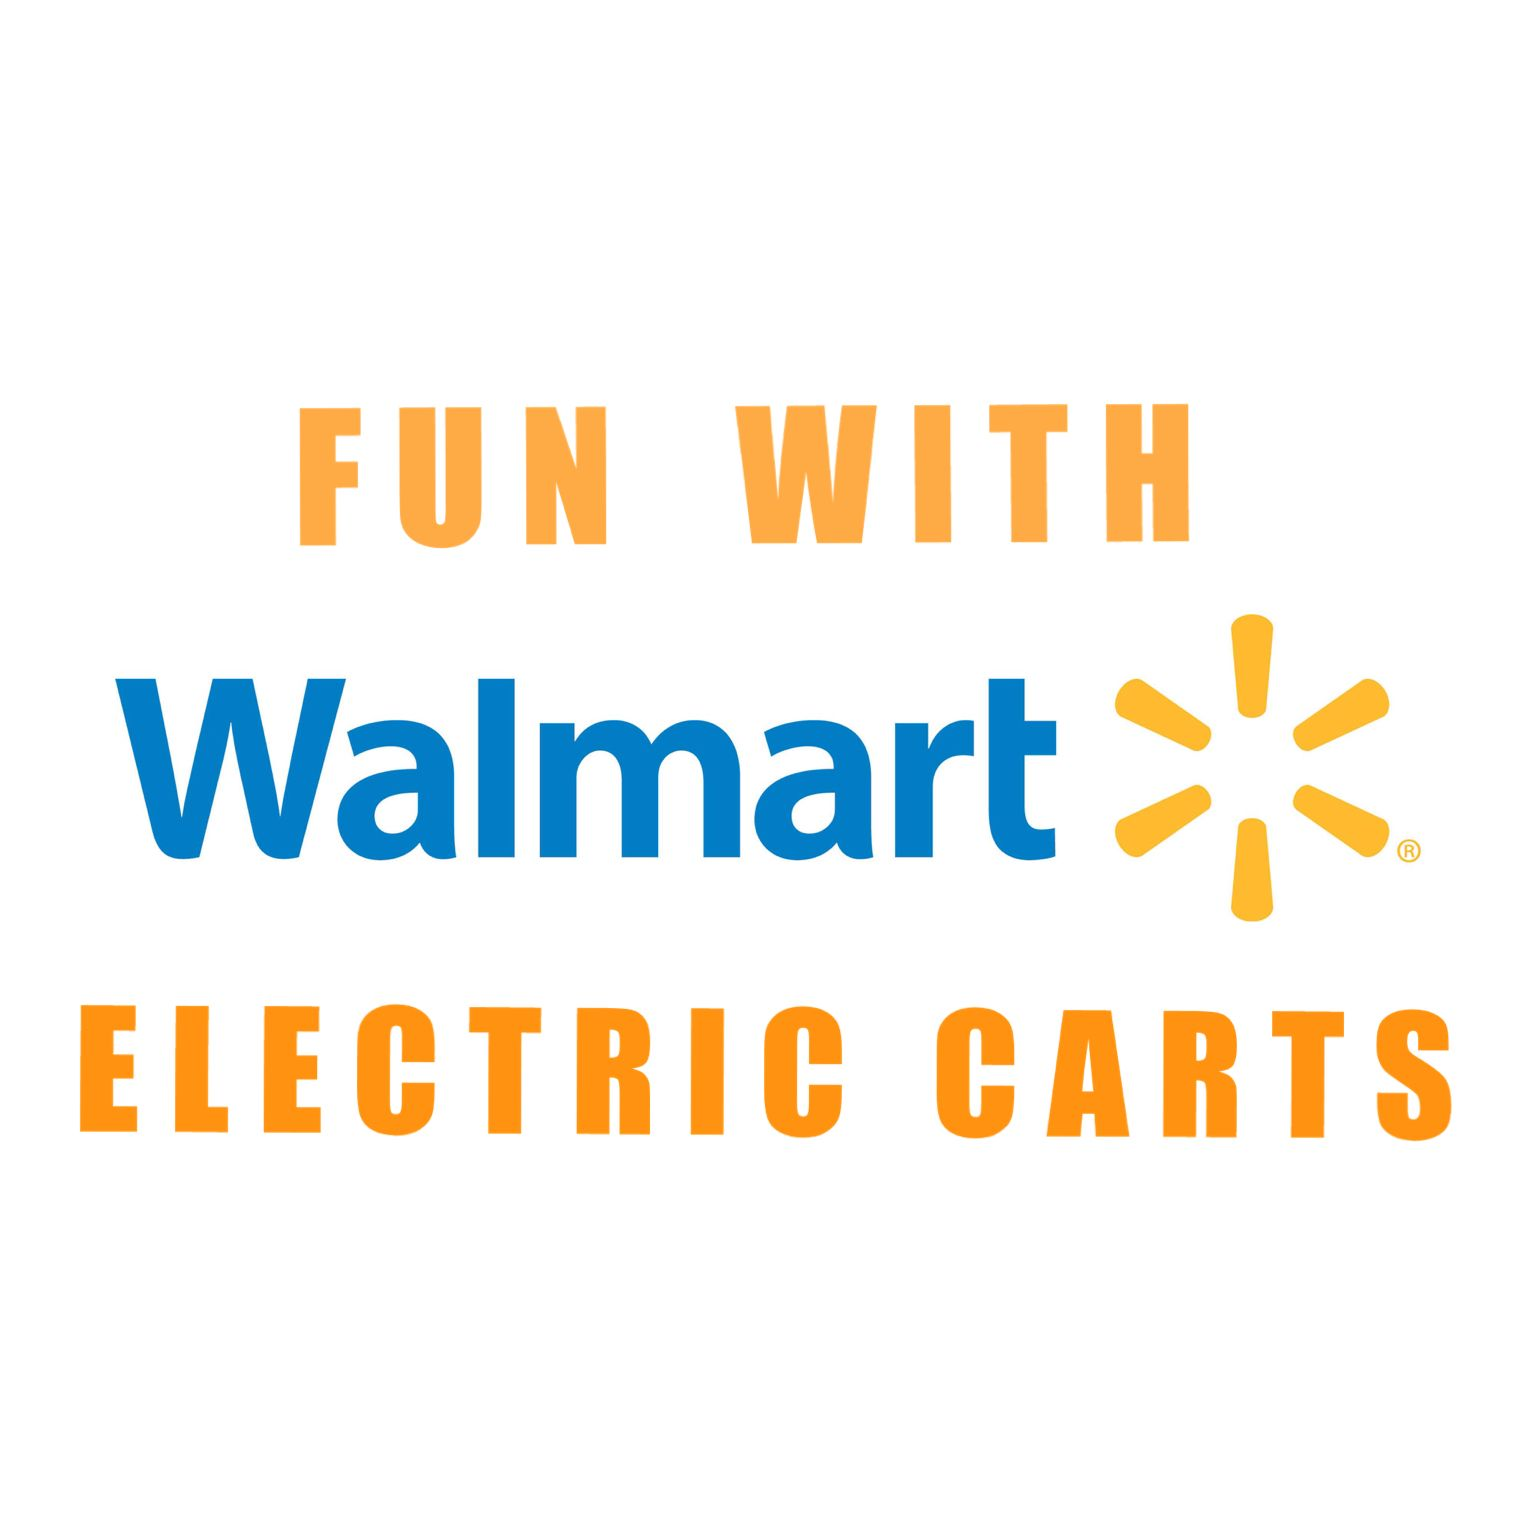 Fun with wal mart electric carts with images walmart